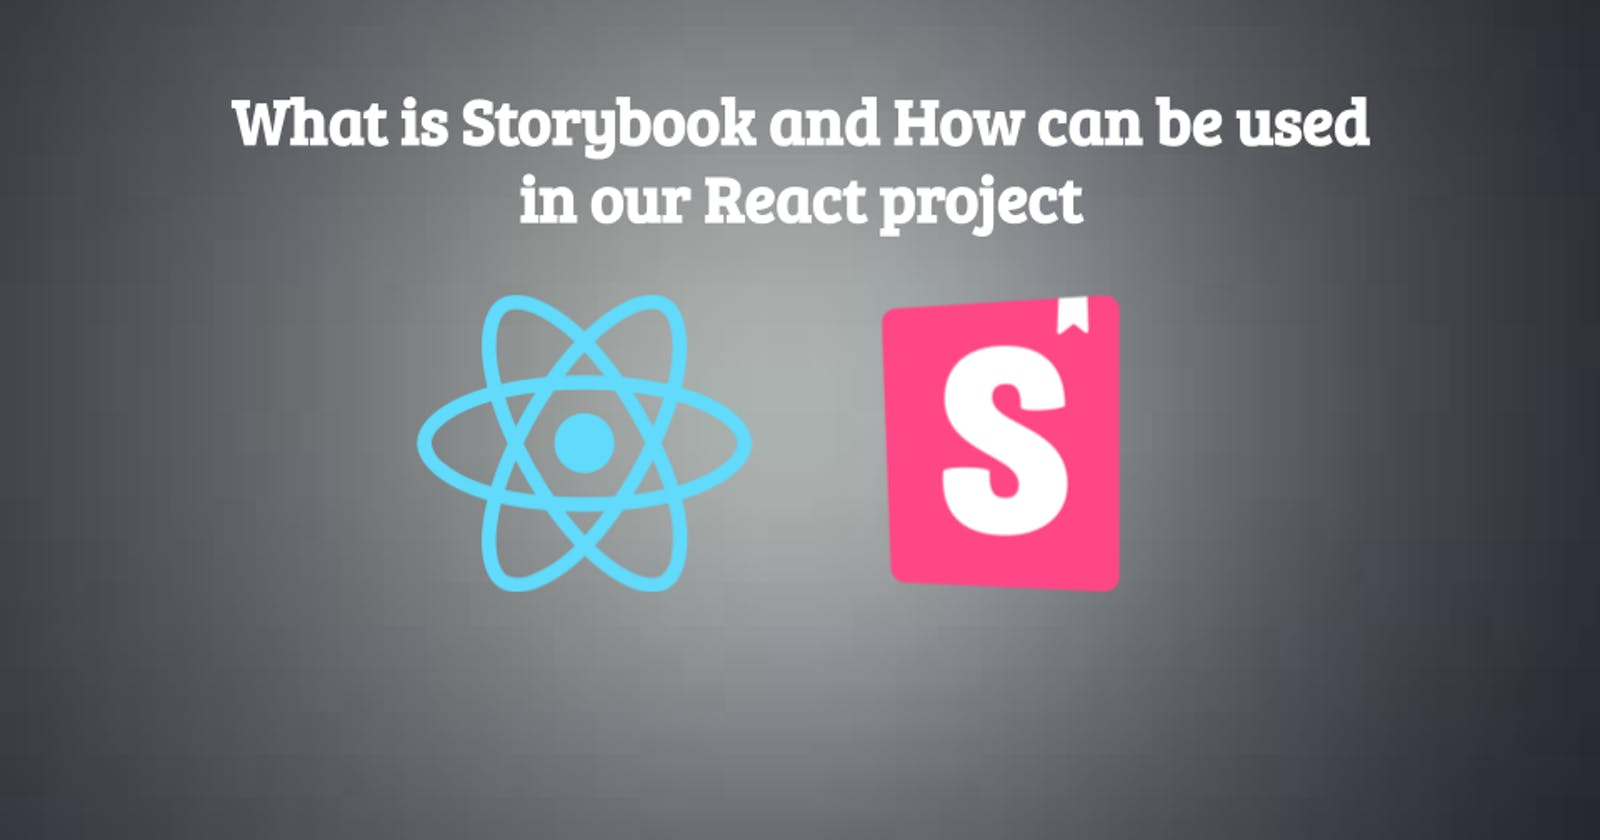 What is Storybook and How can be used in our React project